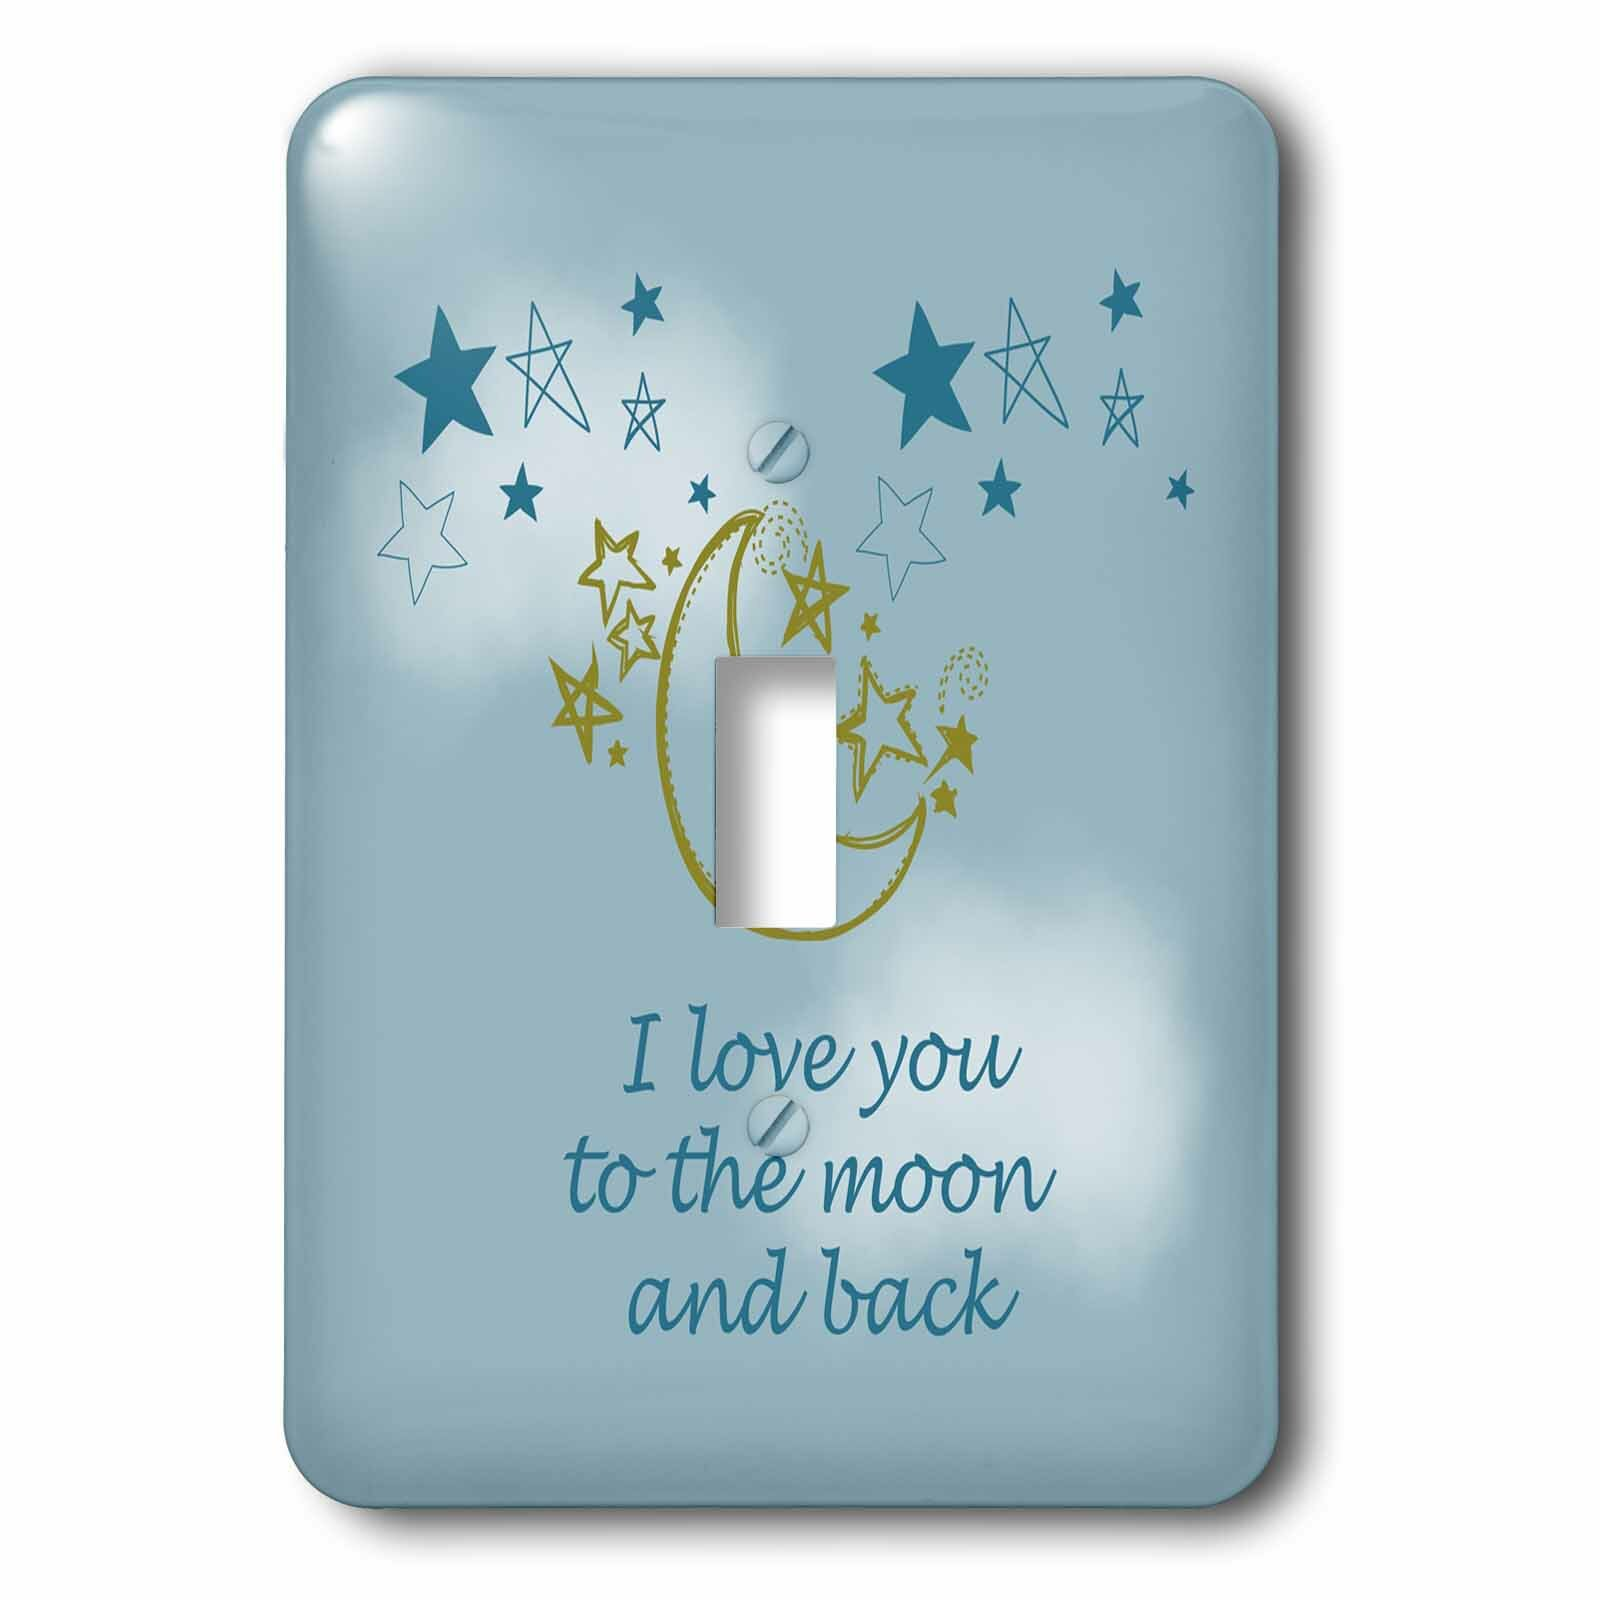 3drose To The Moon And Back 1 Gang Toggle Light Switch Wall Plate Wayfair